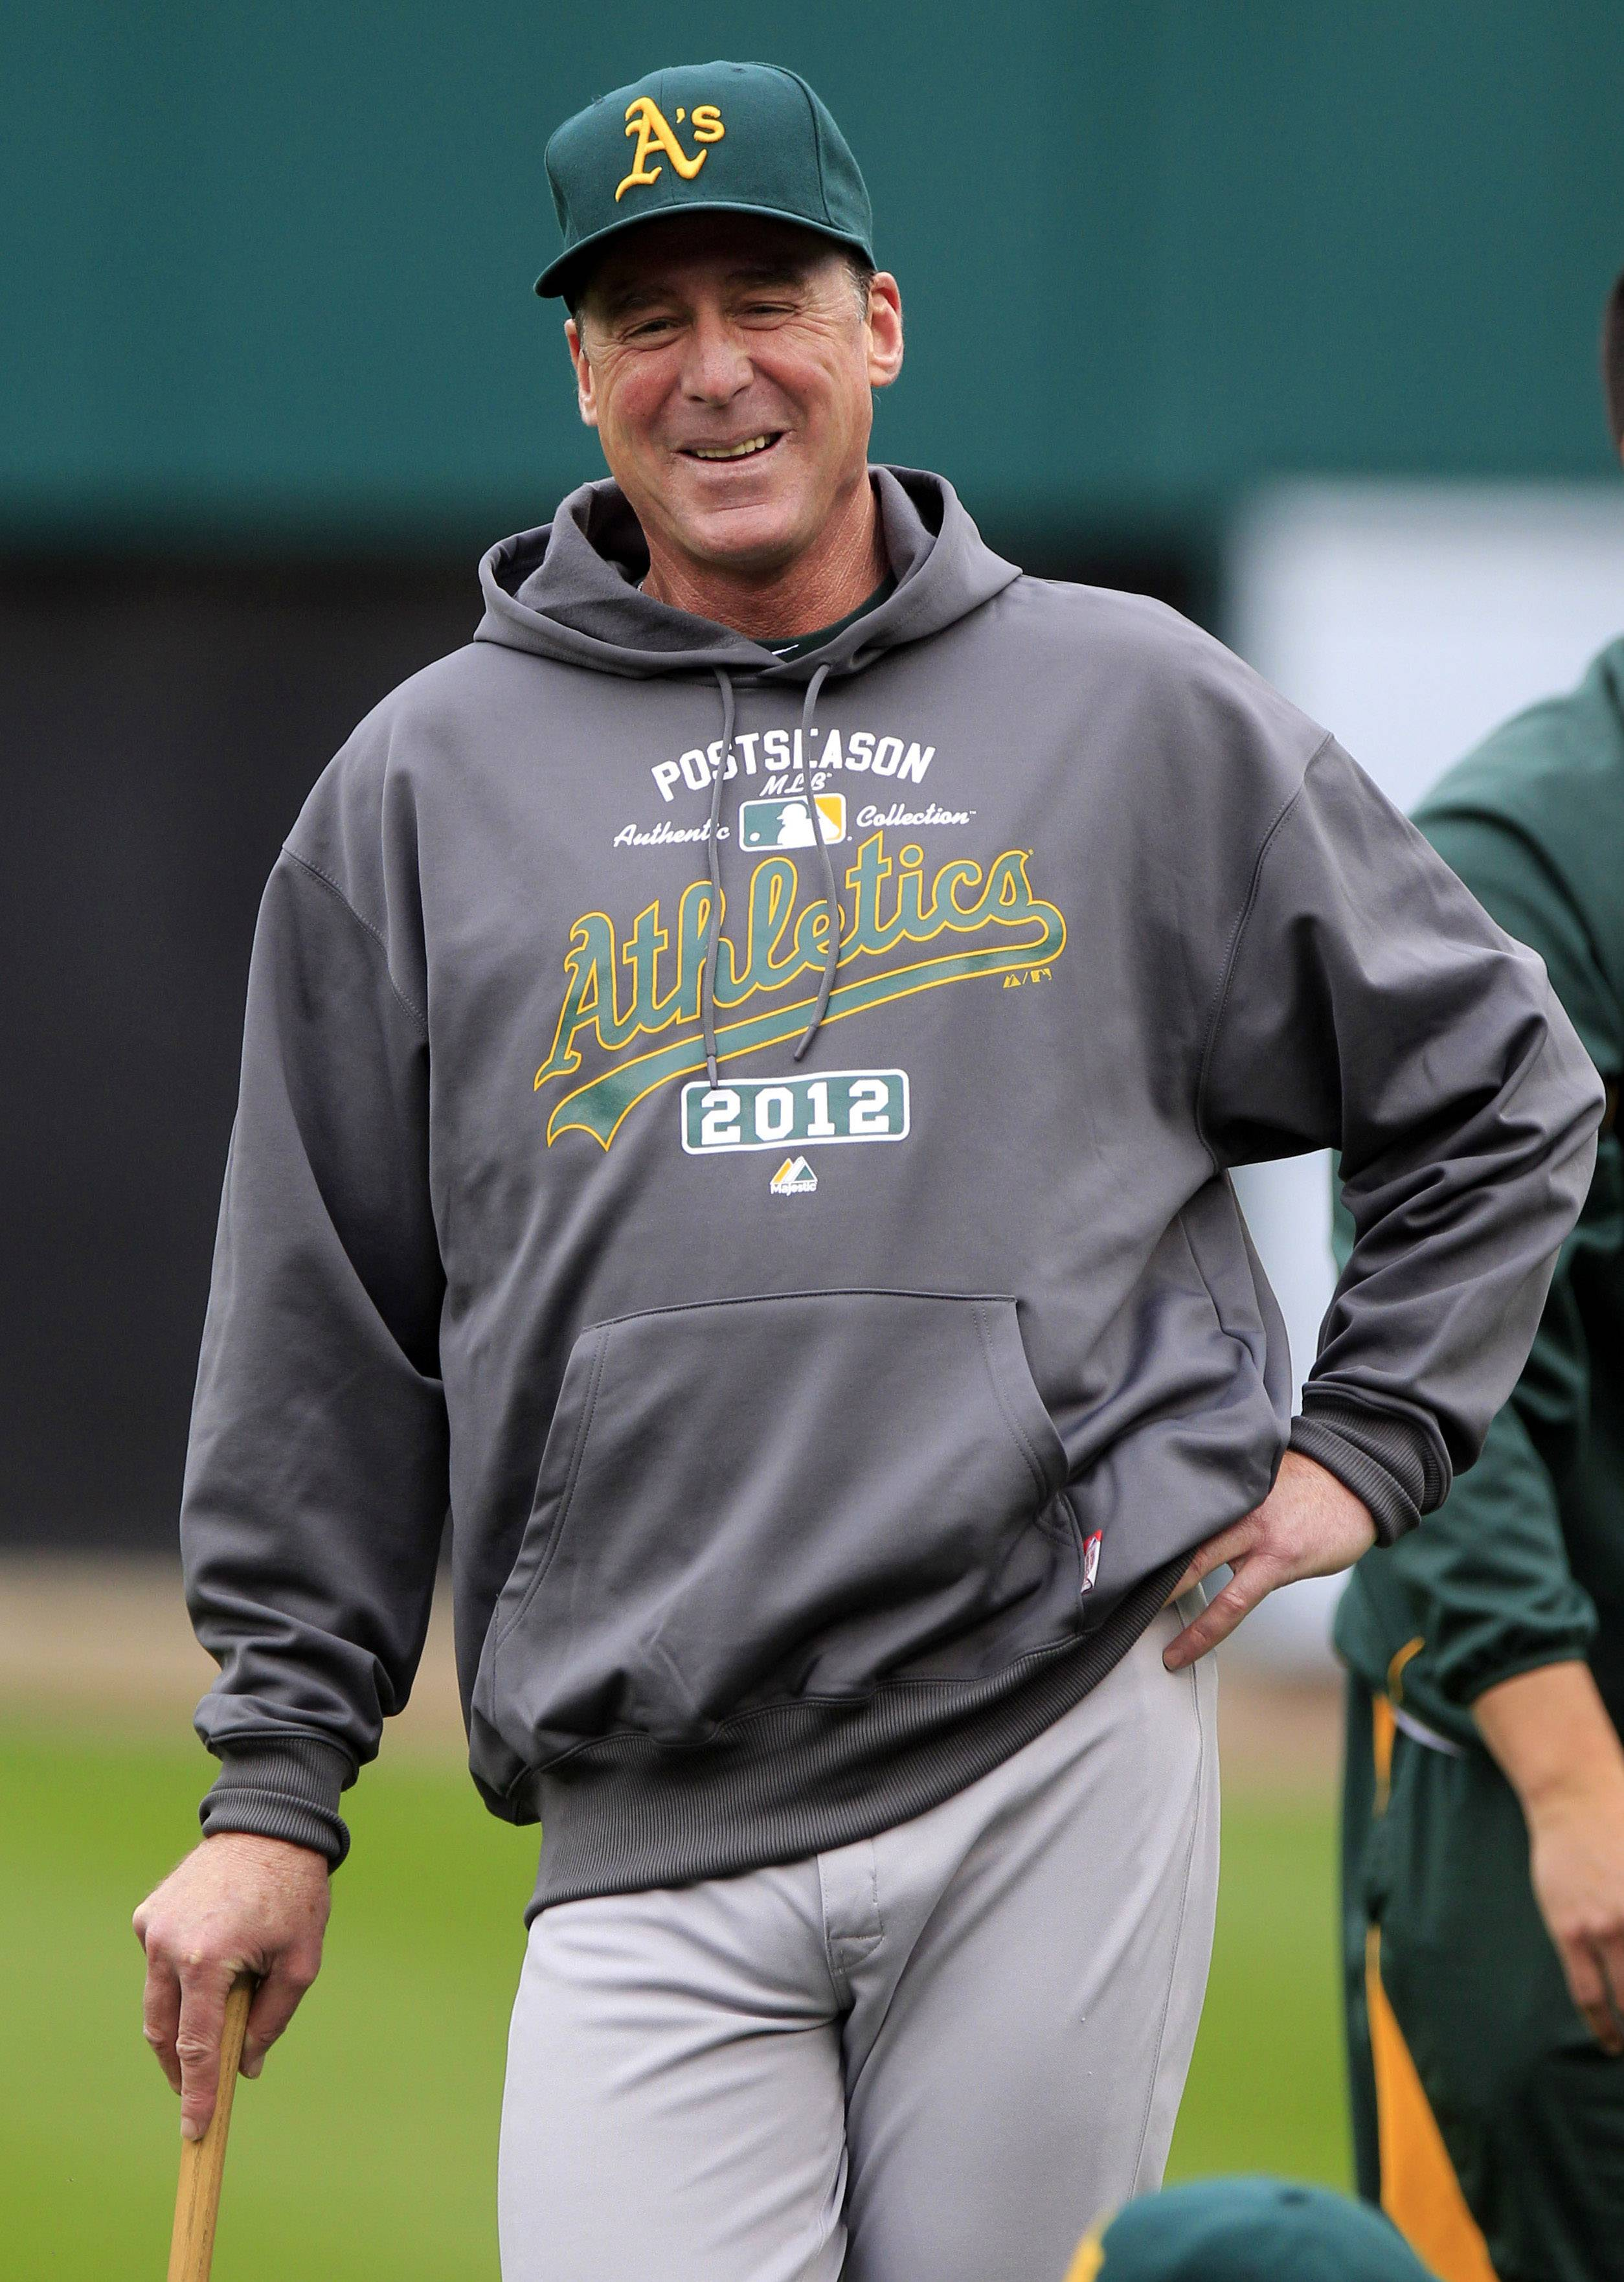 Oakland Athletics manager Bob Melvin was voted as the American League Manager of the Year on Tuesday.